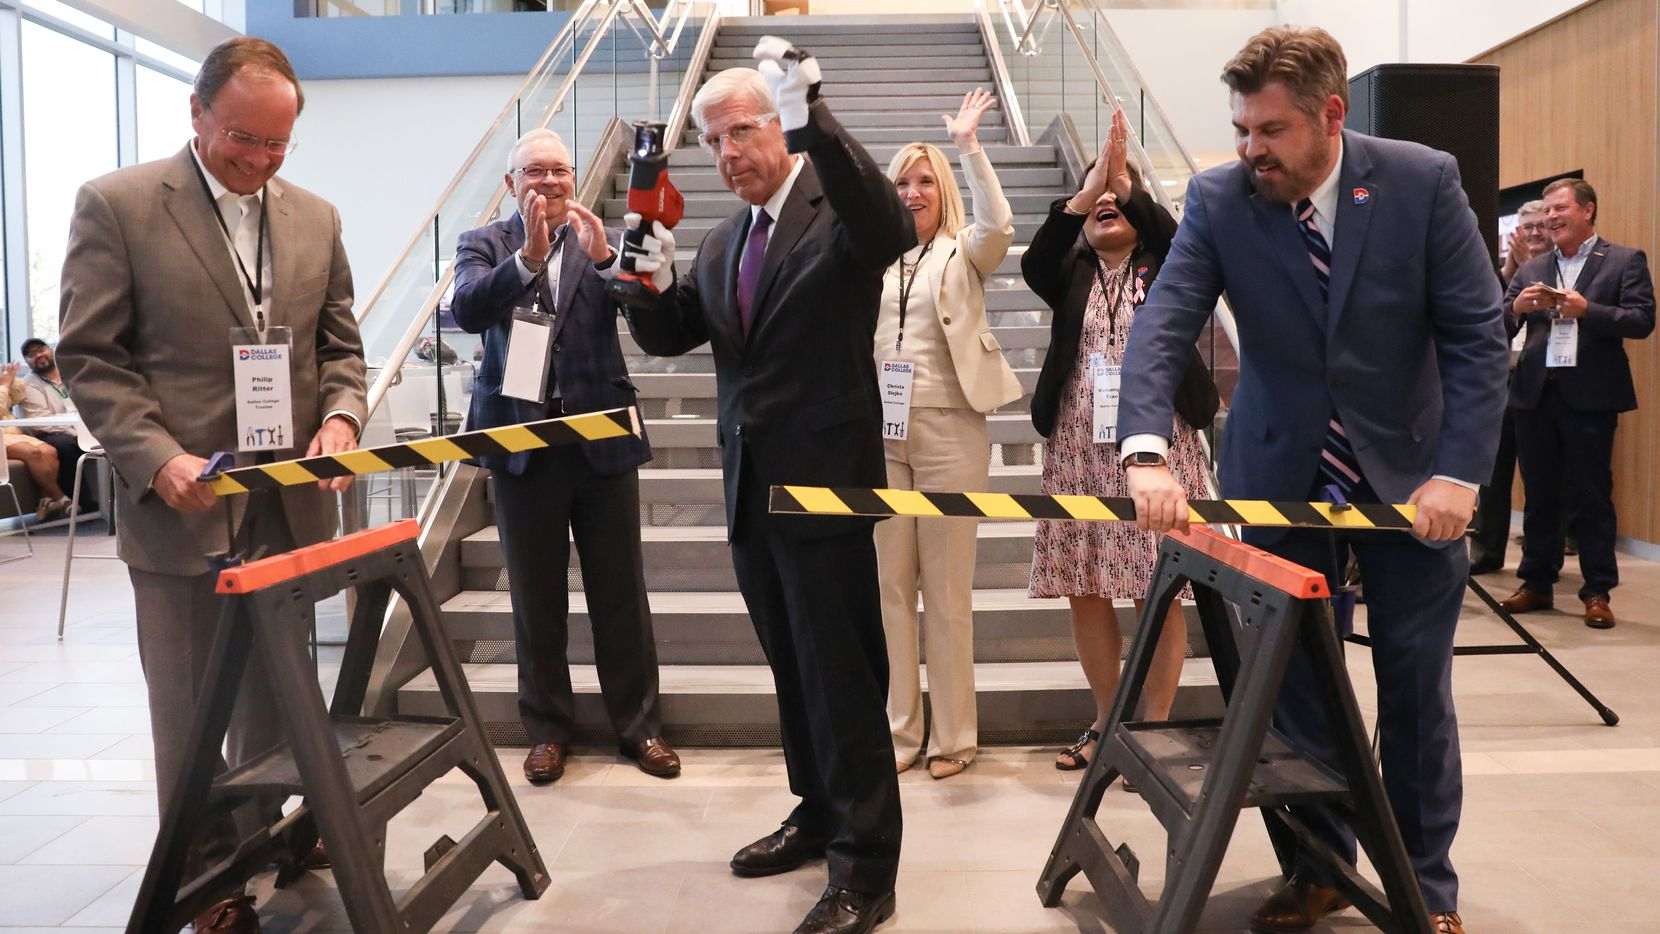 Dallas College Chancellor Joe May saws through a board as a construction-themed take on a ribbon cutting for the Construction Sciences Building at the Dallas College Coppell Center alongside Dallas College and local leadership October 6, 2021.